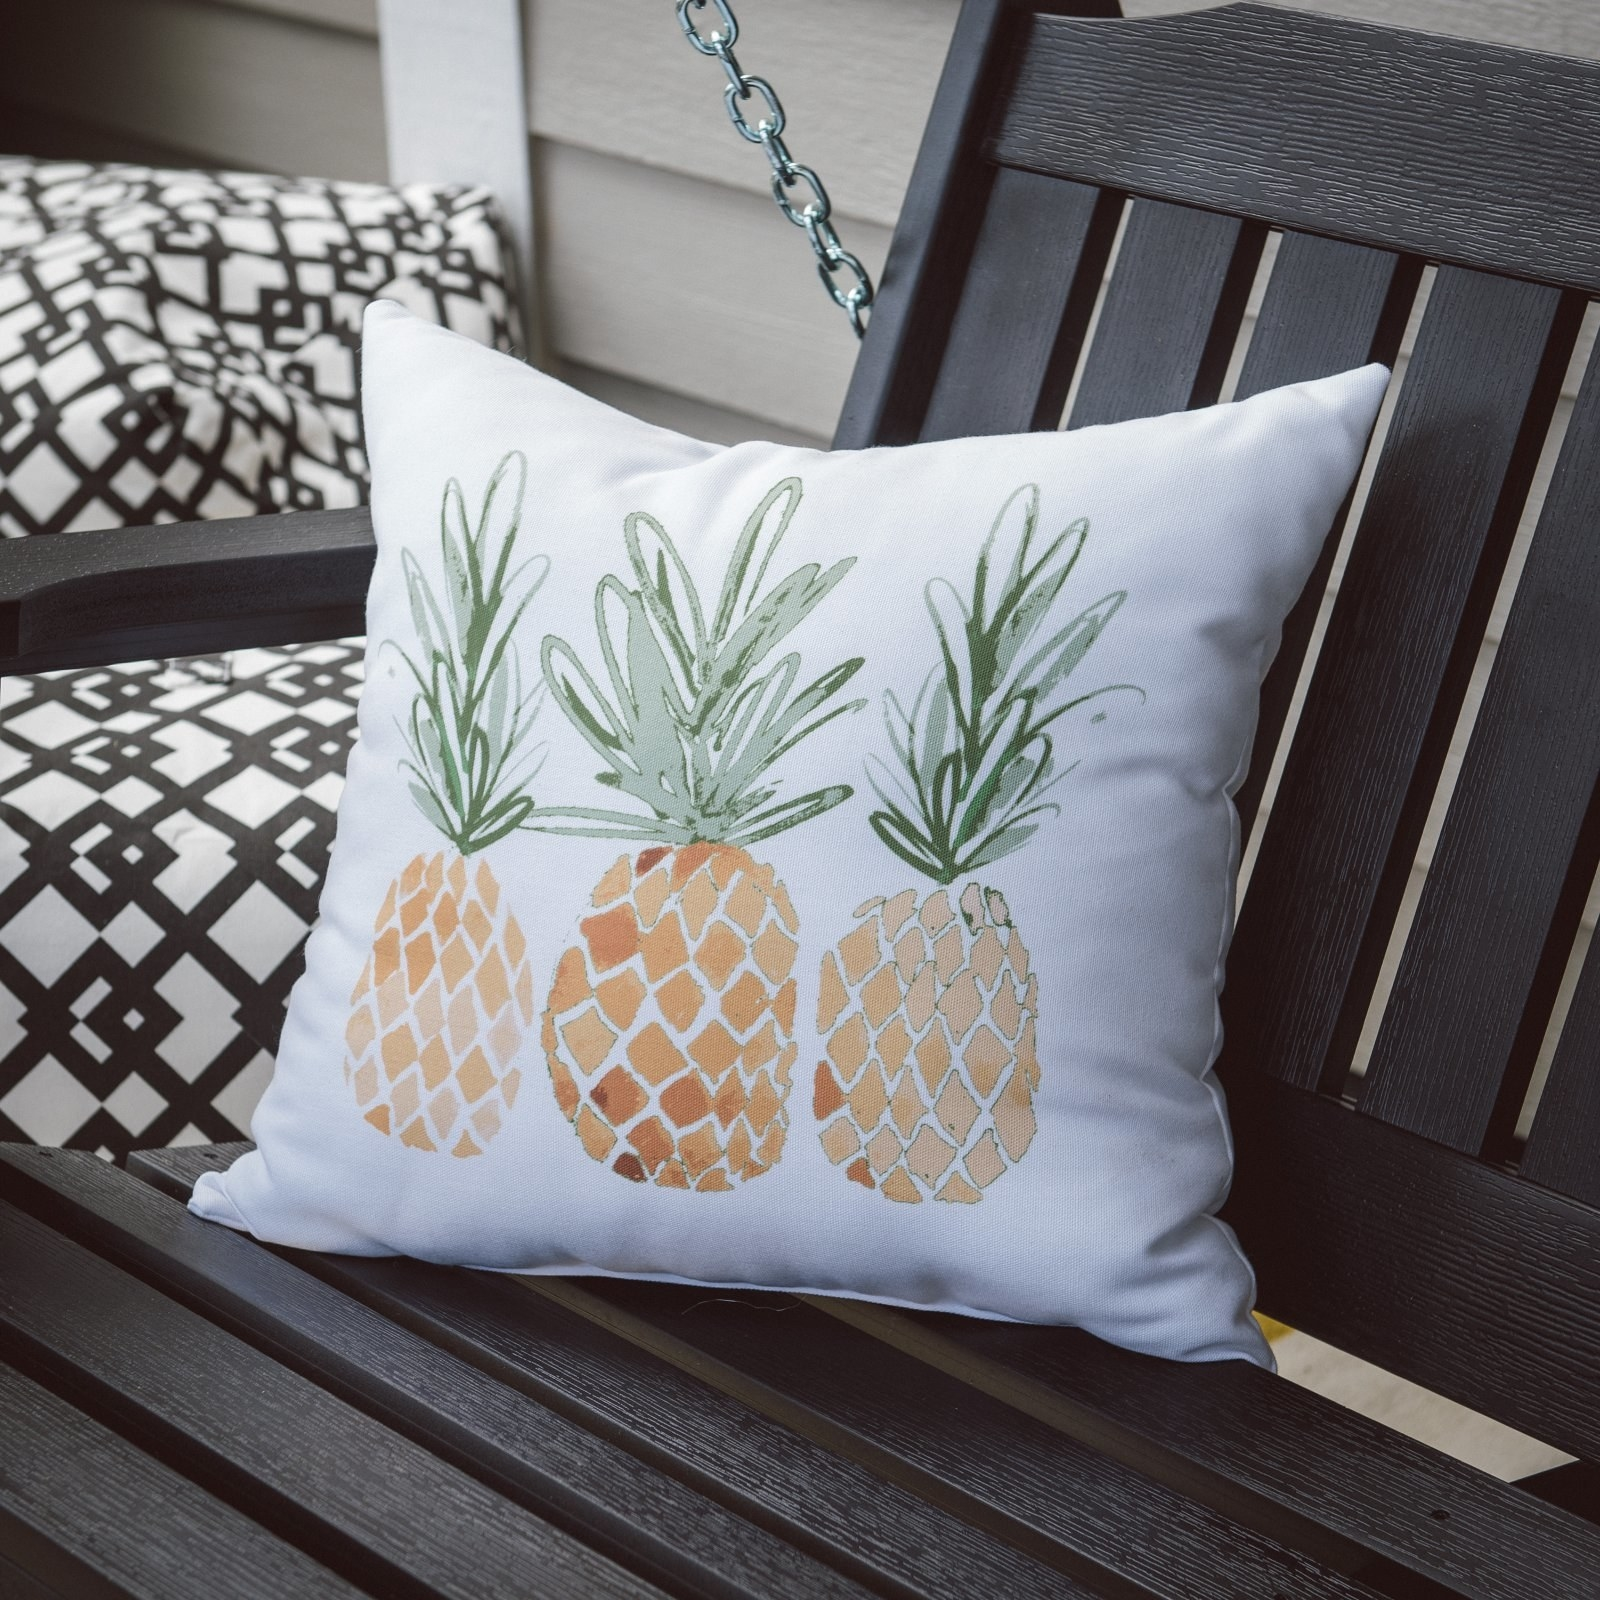 a white pillow with three pineapples on it